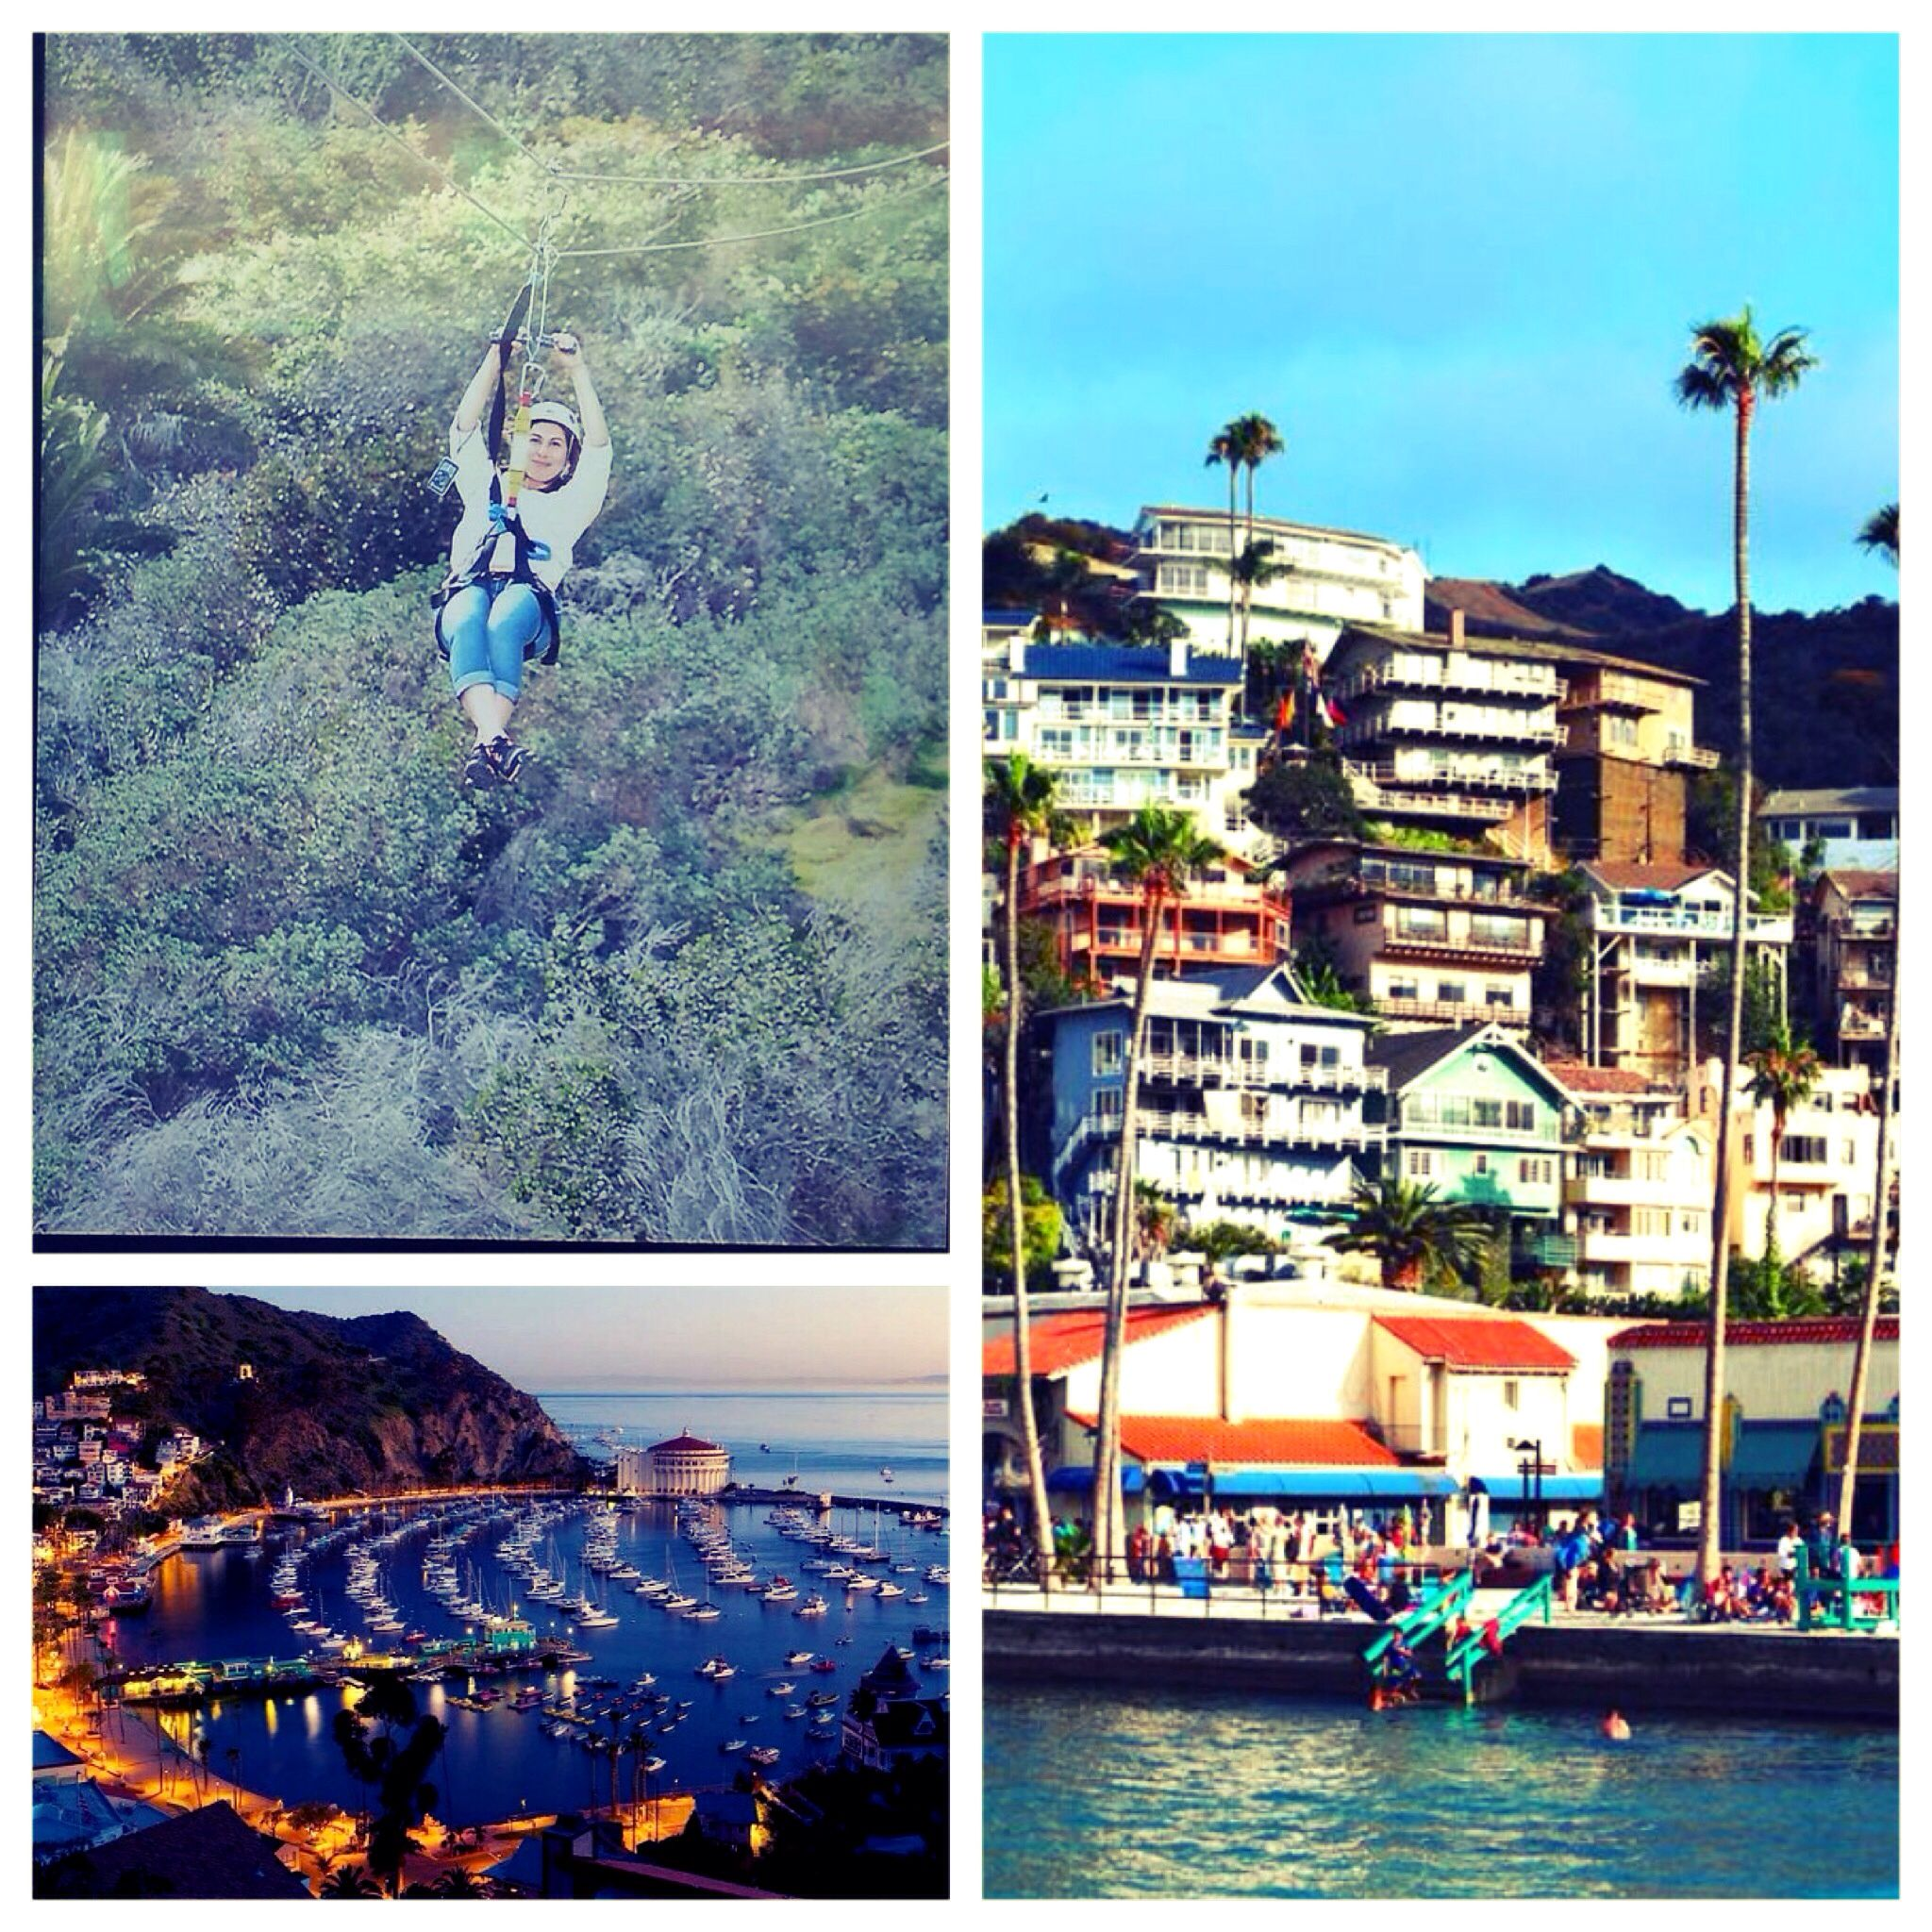 No time, or on a budget try staying in Catalina Island for